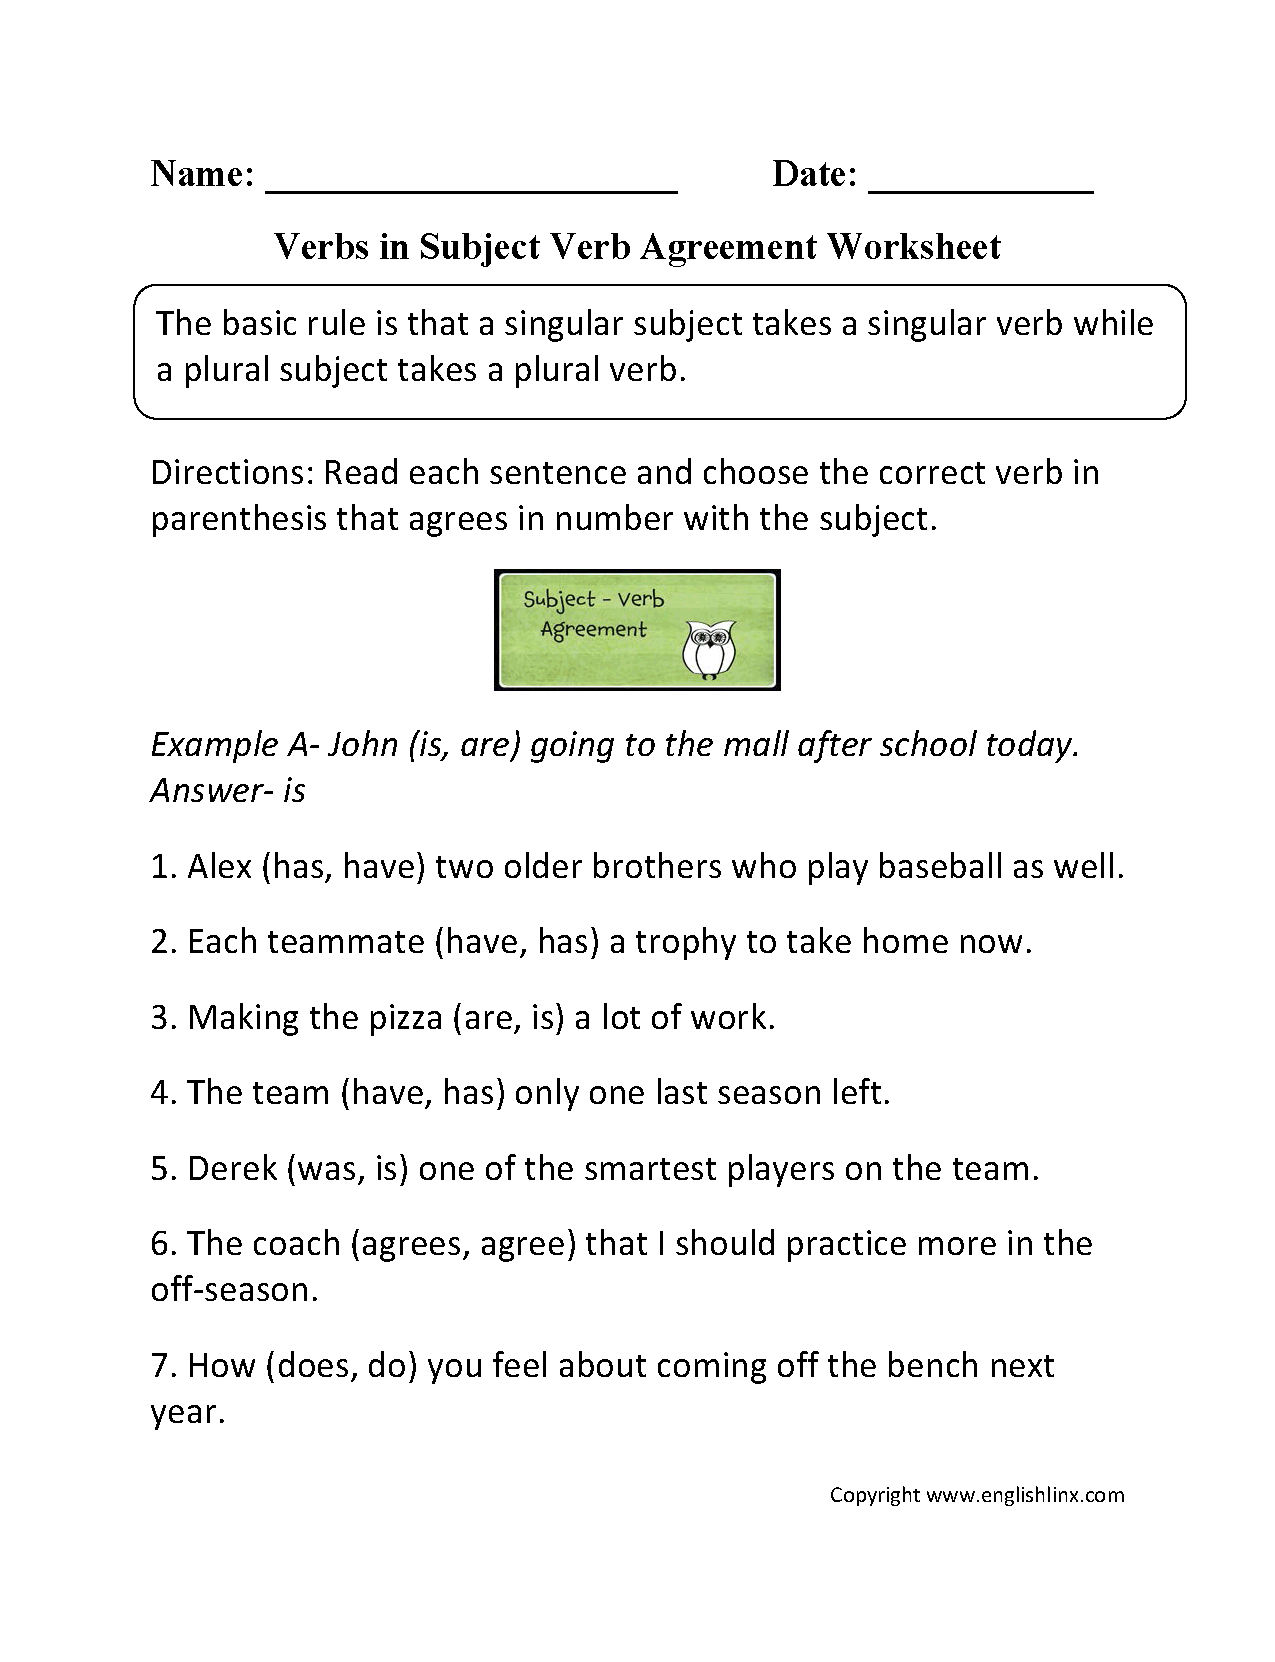 Worksheet Subject Verb Agreement Printable Worksheets